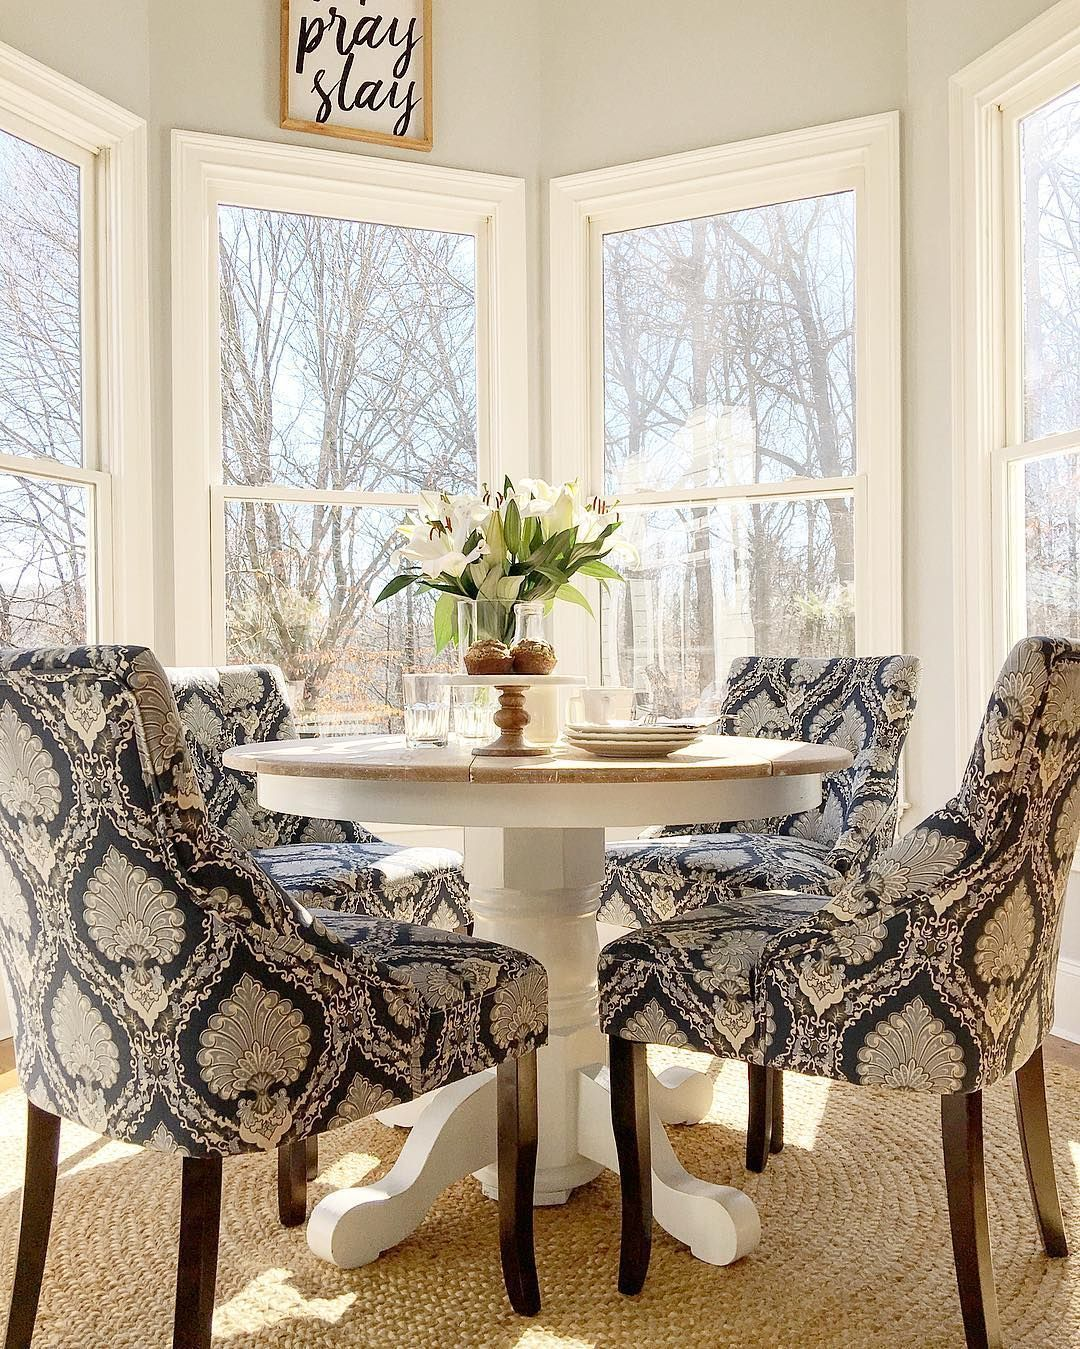 What I Want For My Kitchen A Small Round Pedestal Table With Four Comfy Chairs In An Easily C Dining Room Small Small Dining Room Table Breakfast Nook Table